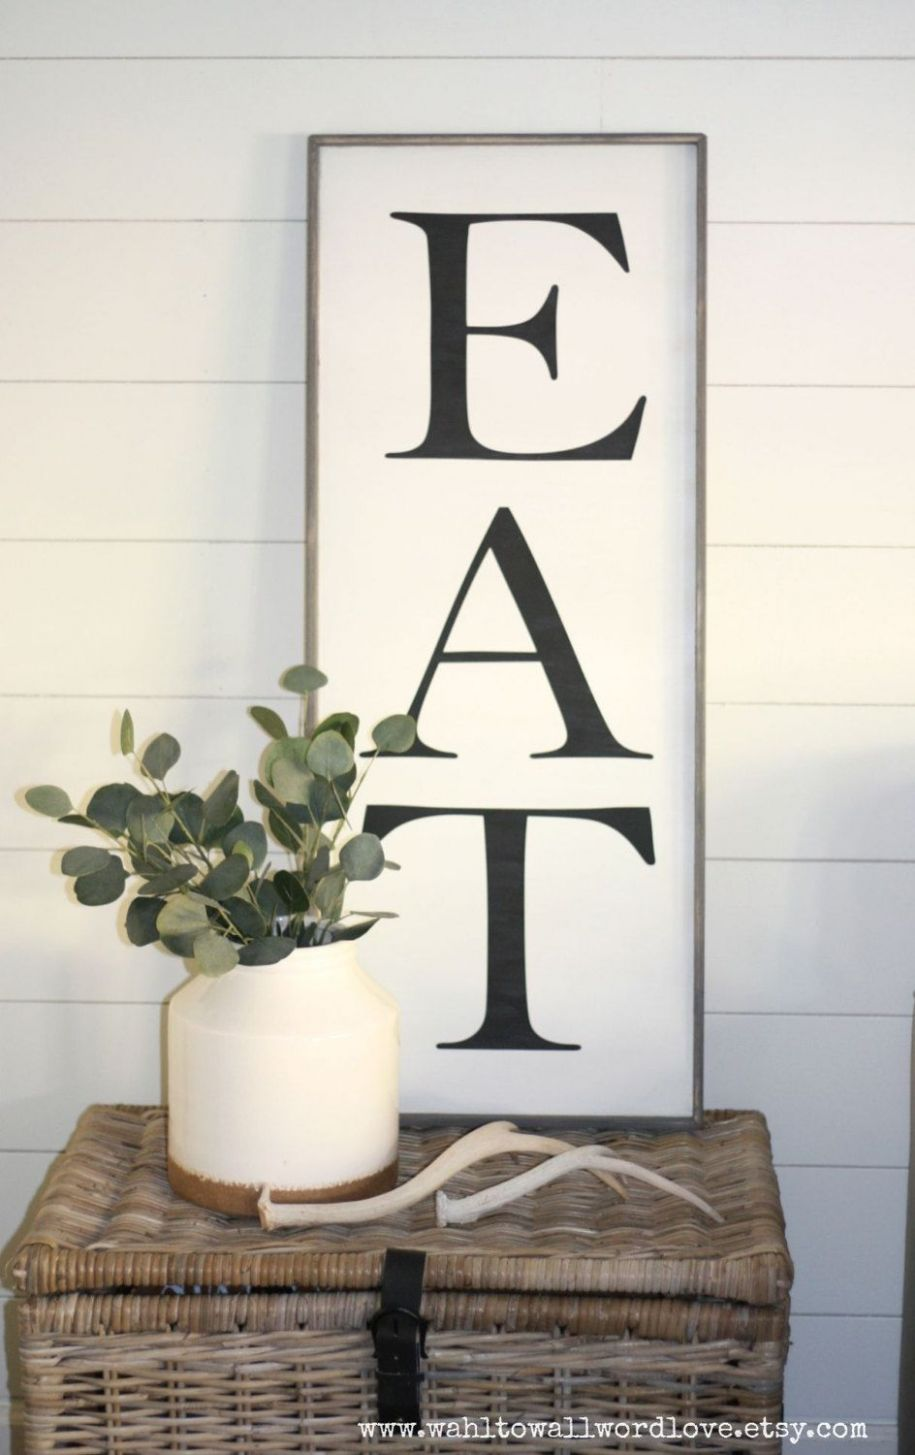 eat sign, large EAT sign, kitchen wall decor, kitchen eat sign ...